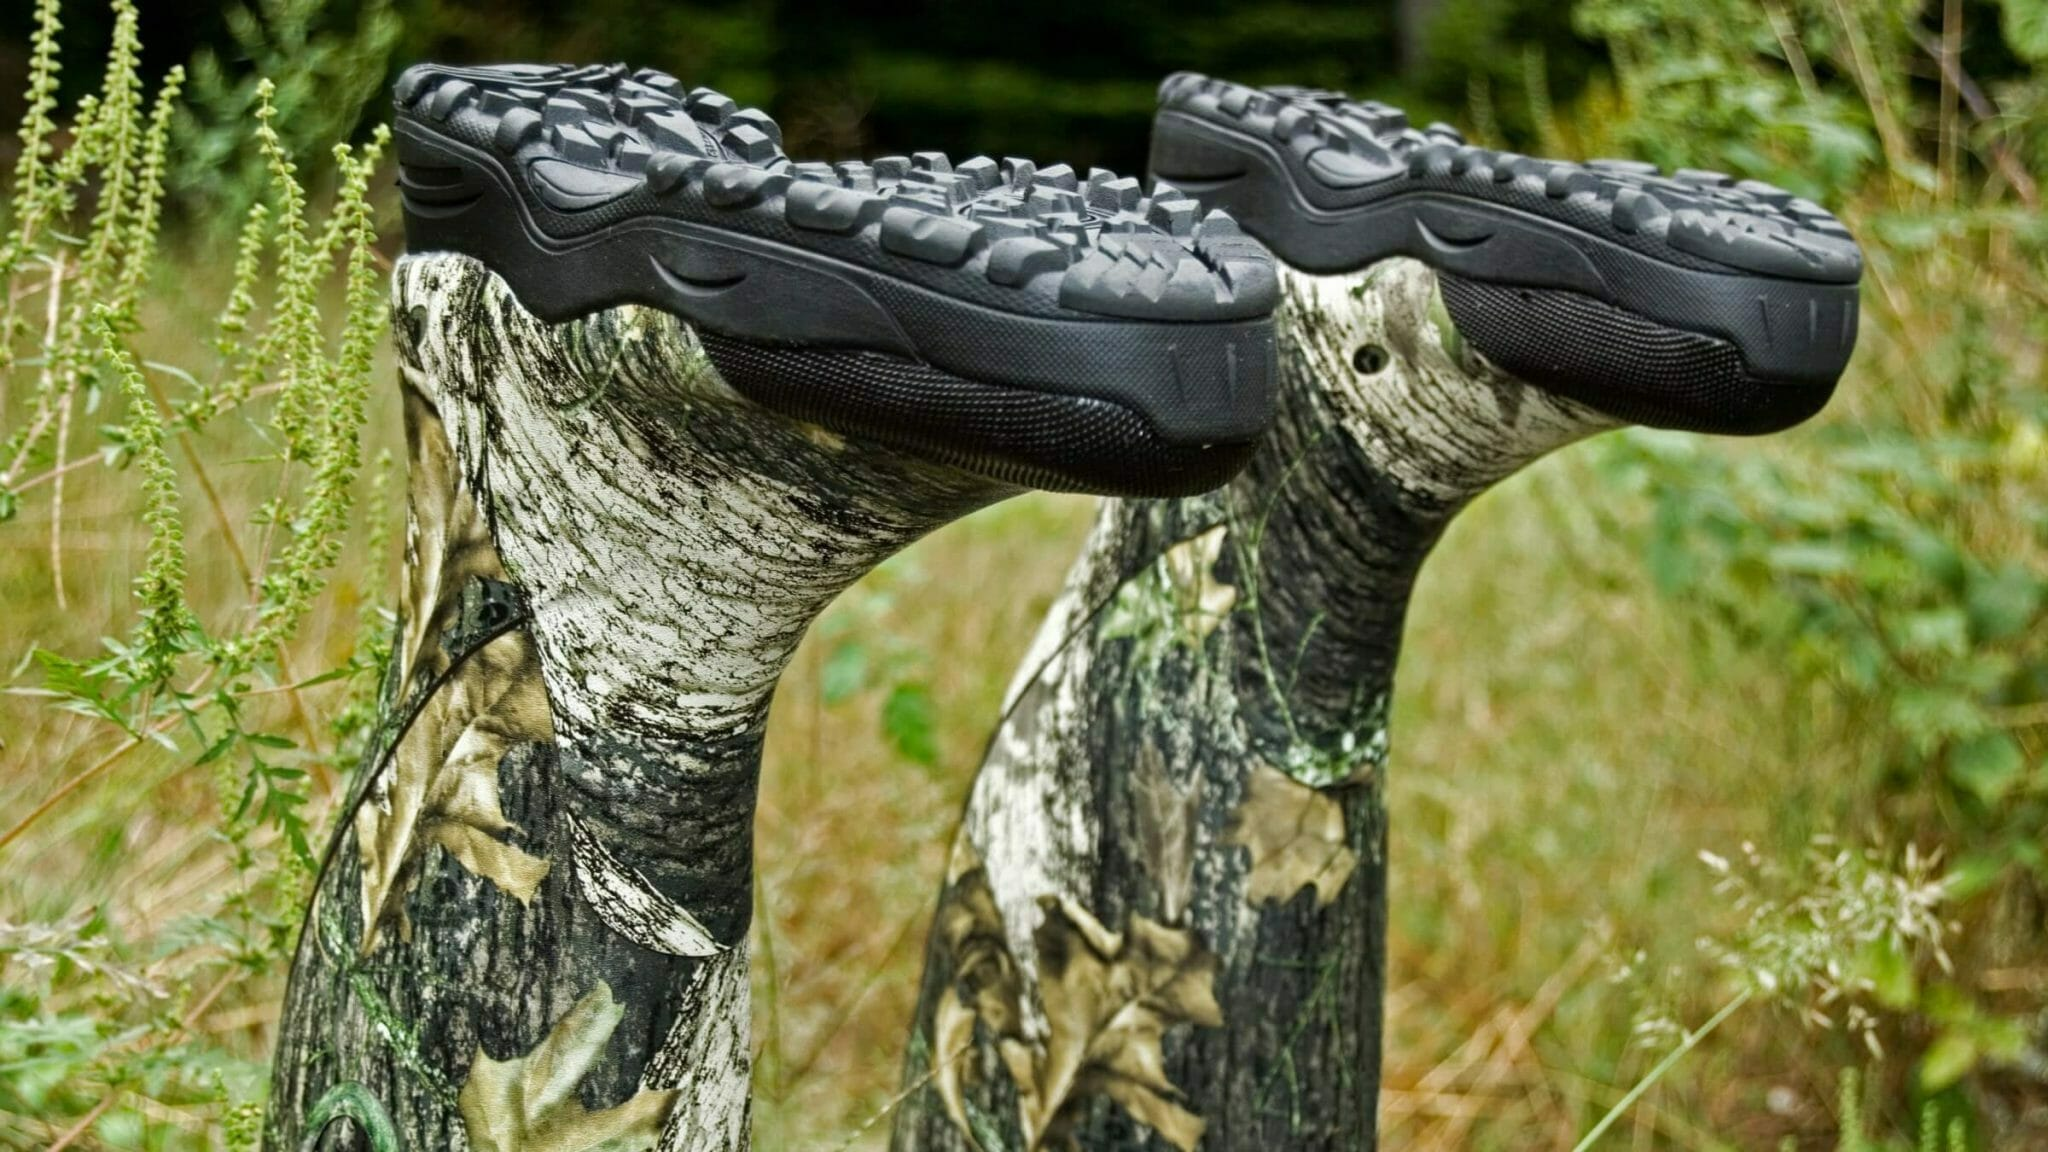 Pair of muck boots snake proof boot sticking up from the grass. Design of the outsole and midsole featured.